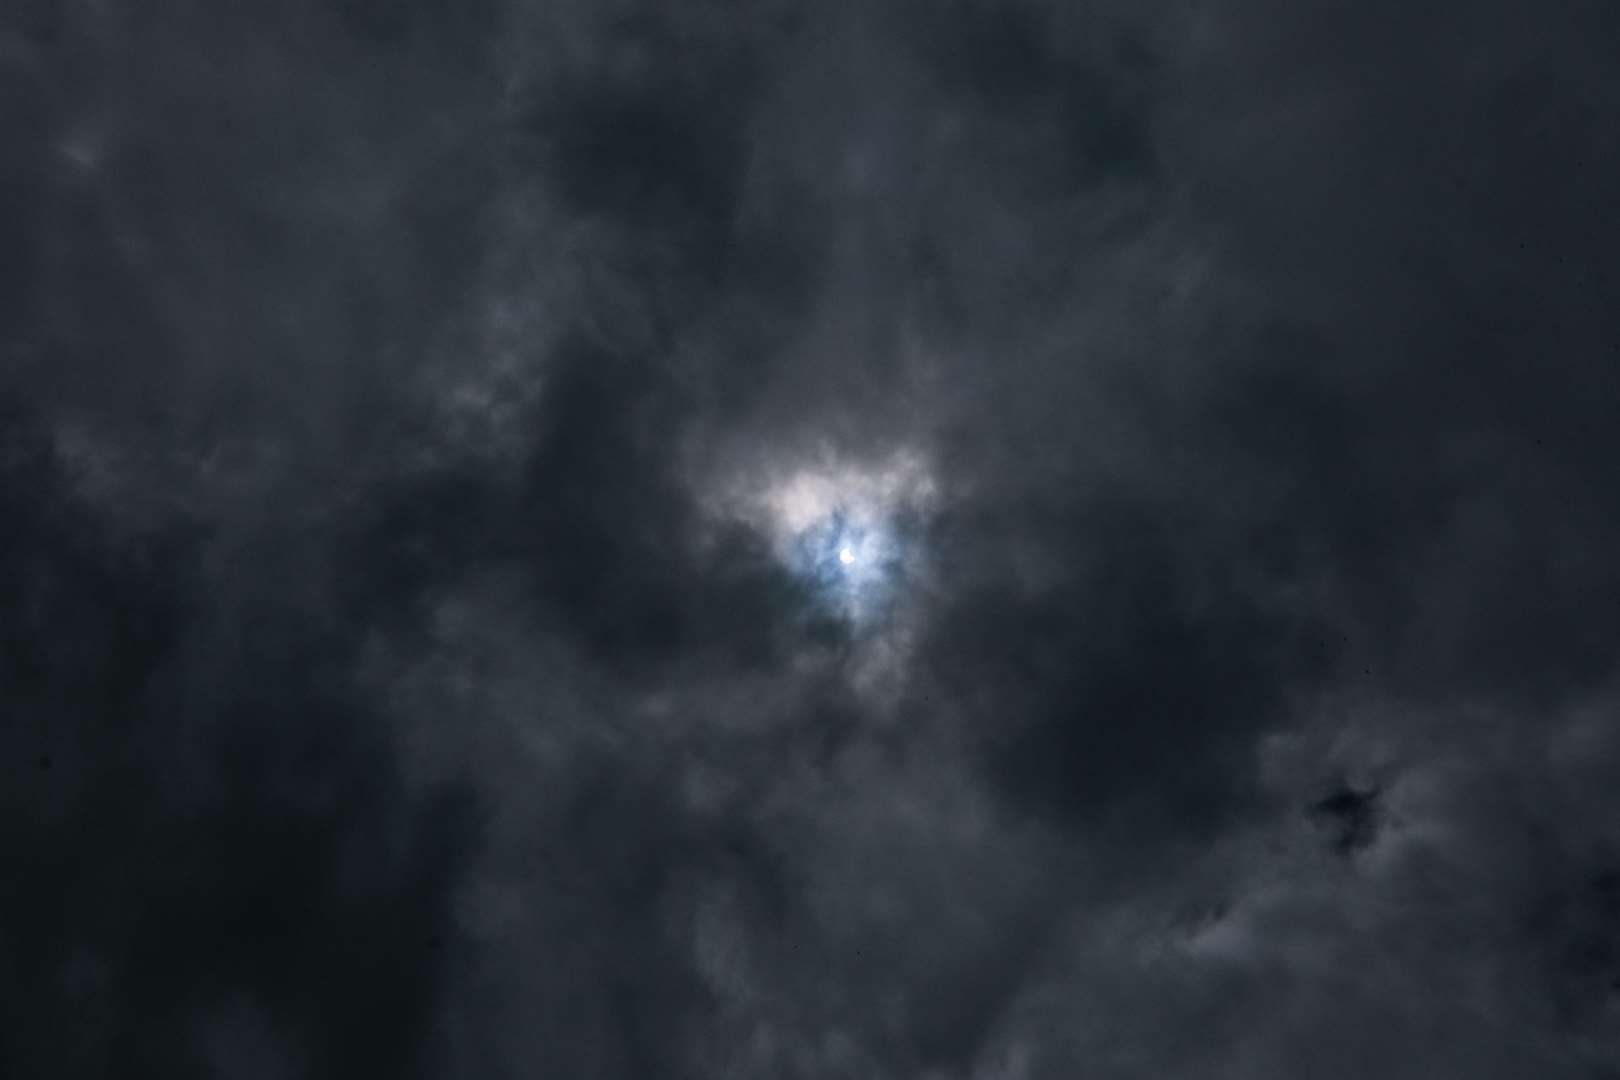 Cloud cover did its best to mask the partial solar eclipse Photo: Phil Cannings